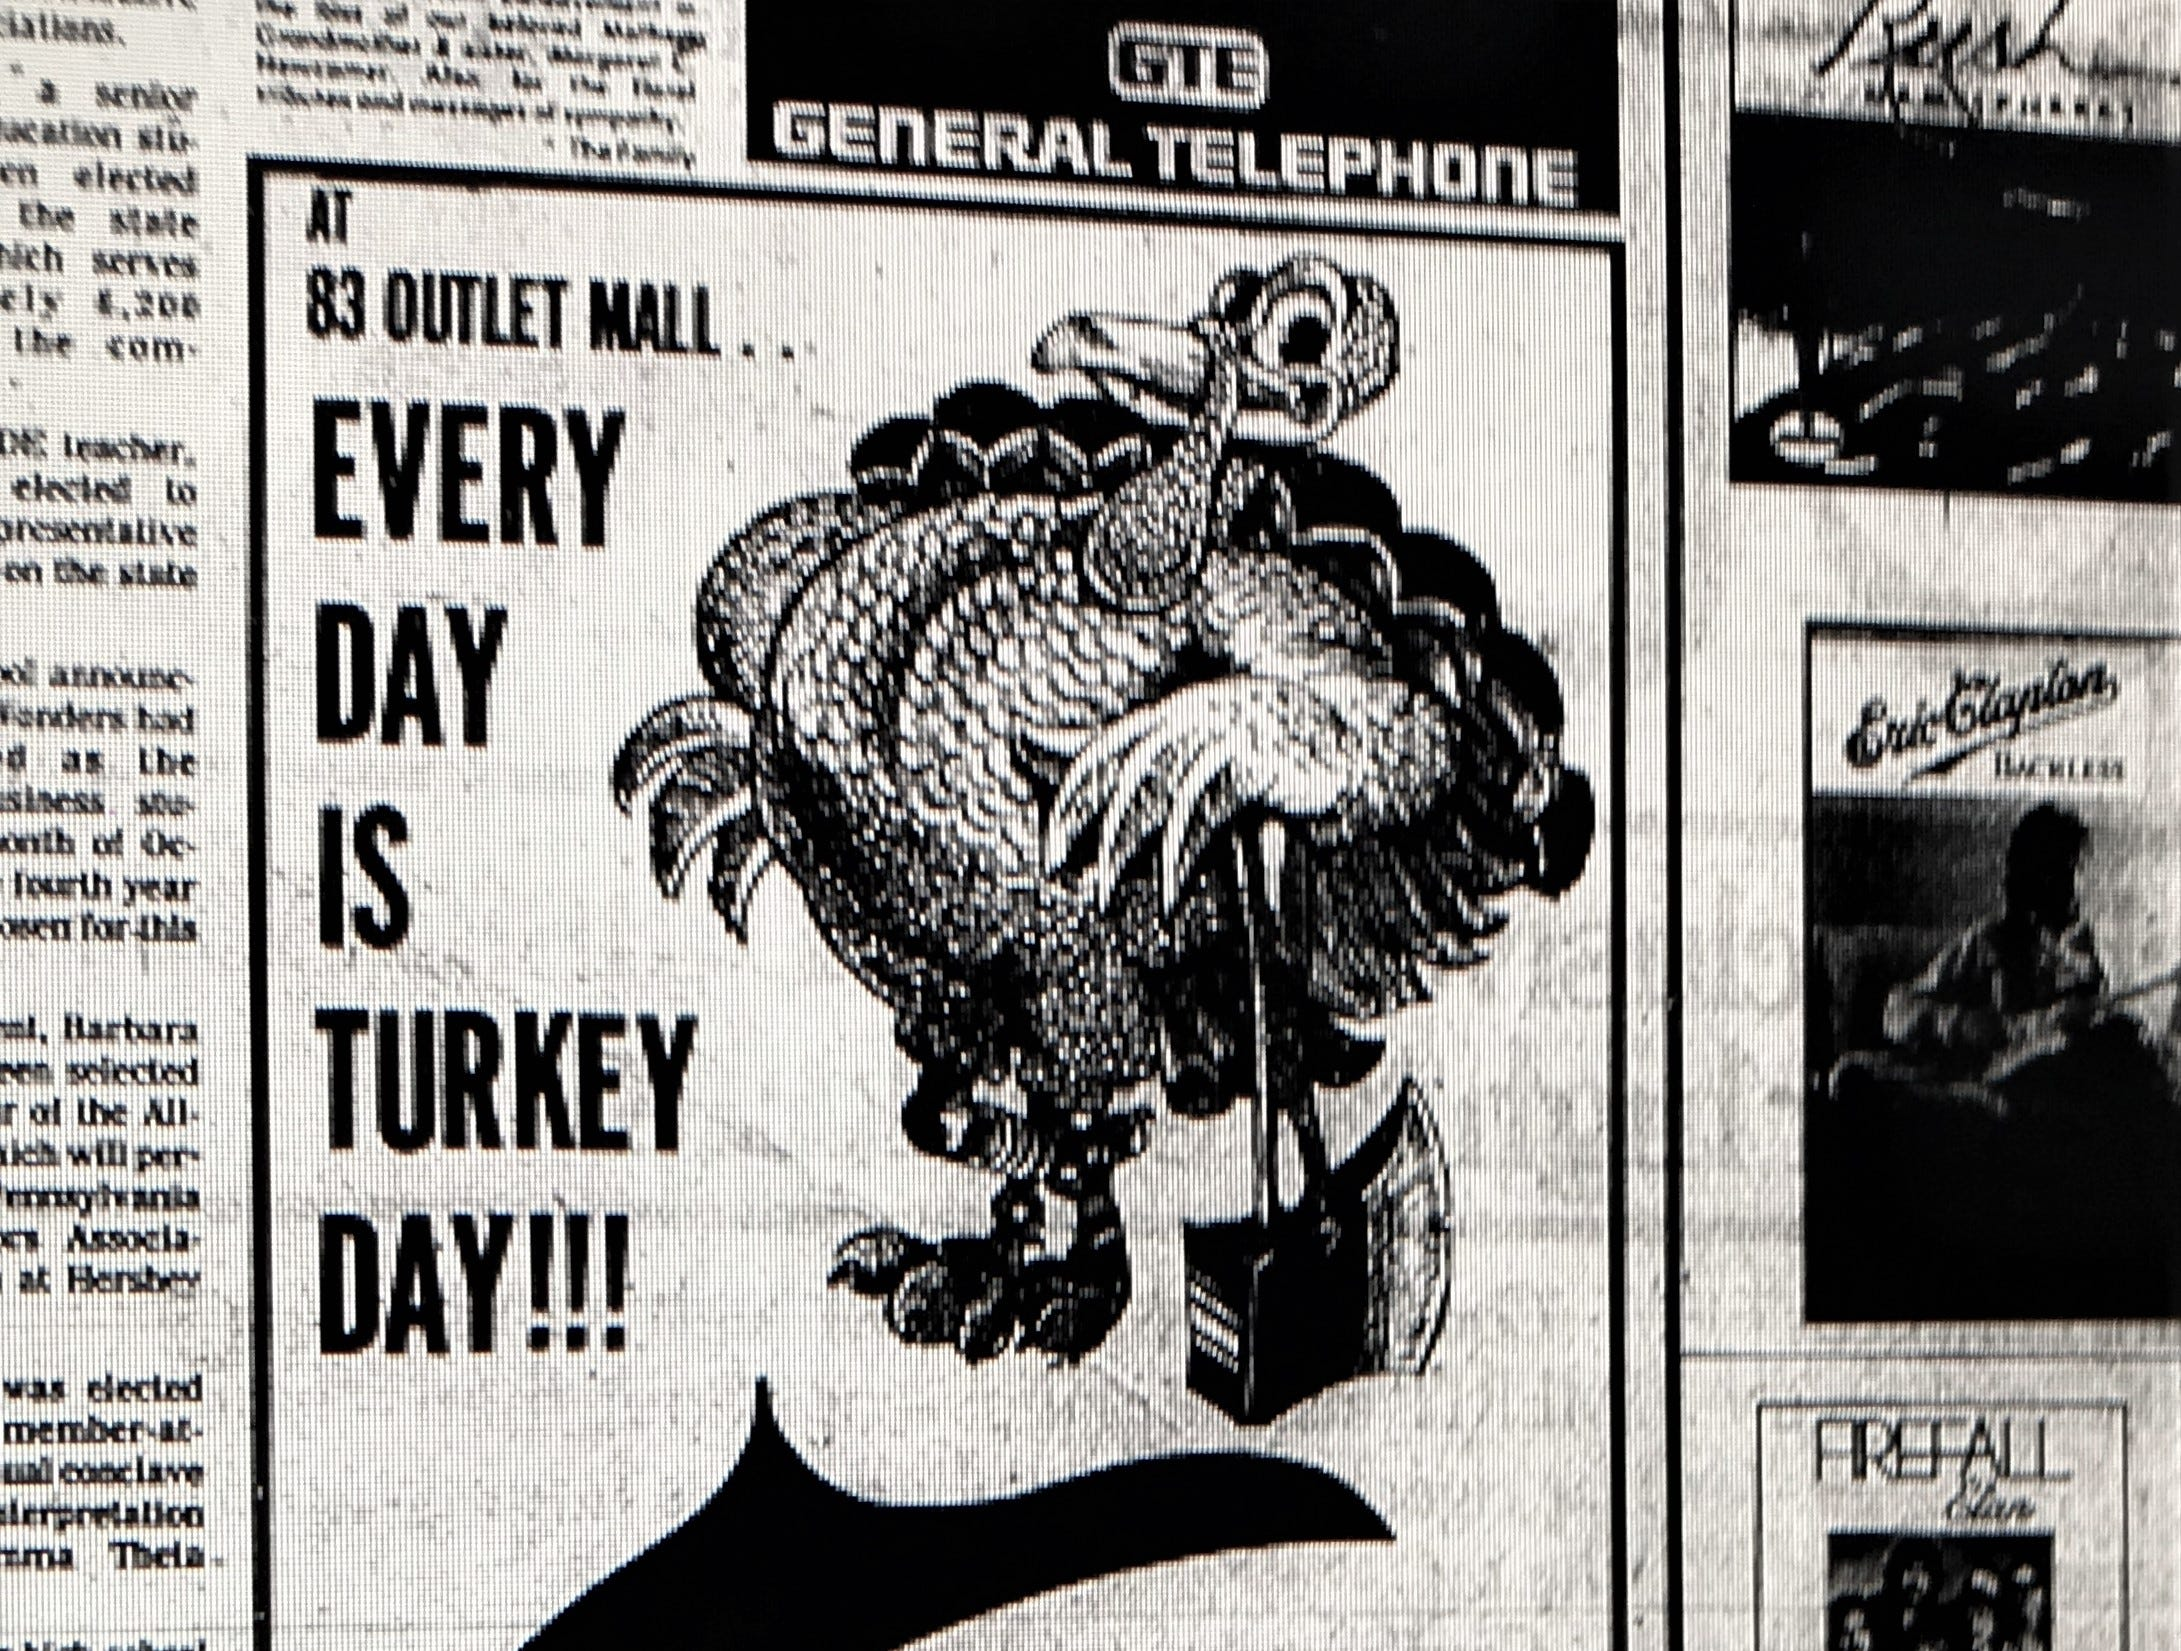 A holiday promotion for a 12 to 14 lb. turkey giveaway at the 83 Outlet Mall. This ad originally ran in the Wednesday, November 22, 1978 issue of the York Daily Record.